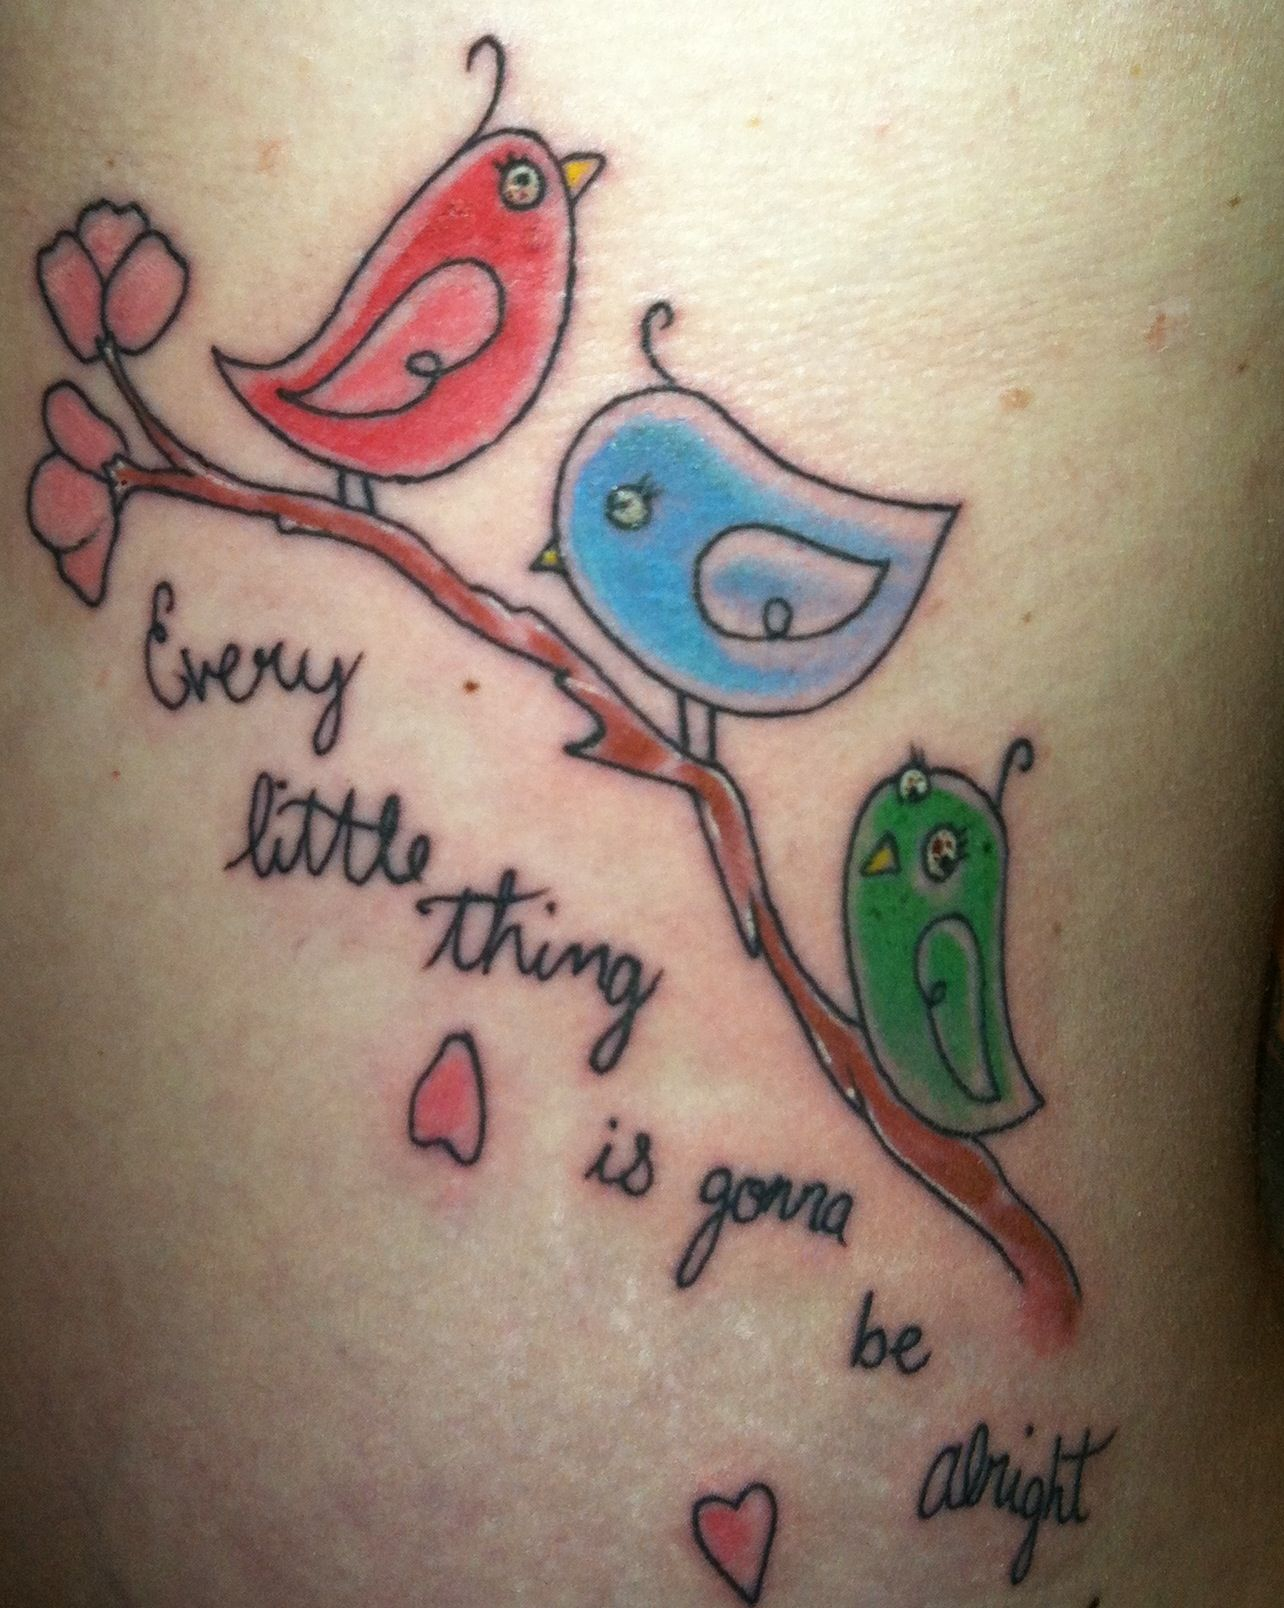 3 Little Birds Tattoo Inspired By The Bob Marley Song Tattoos